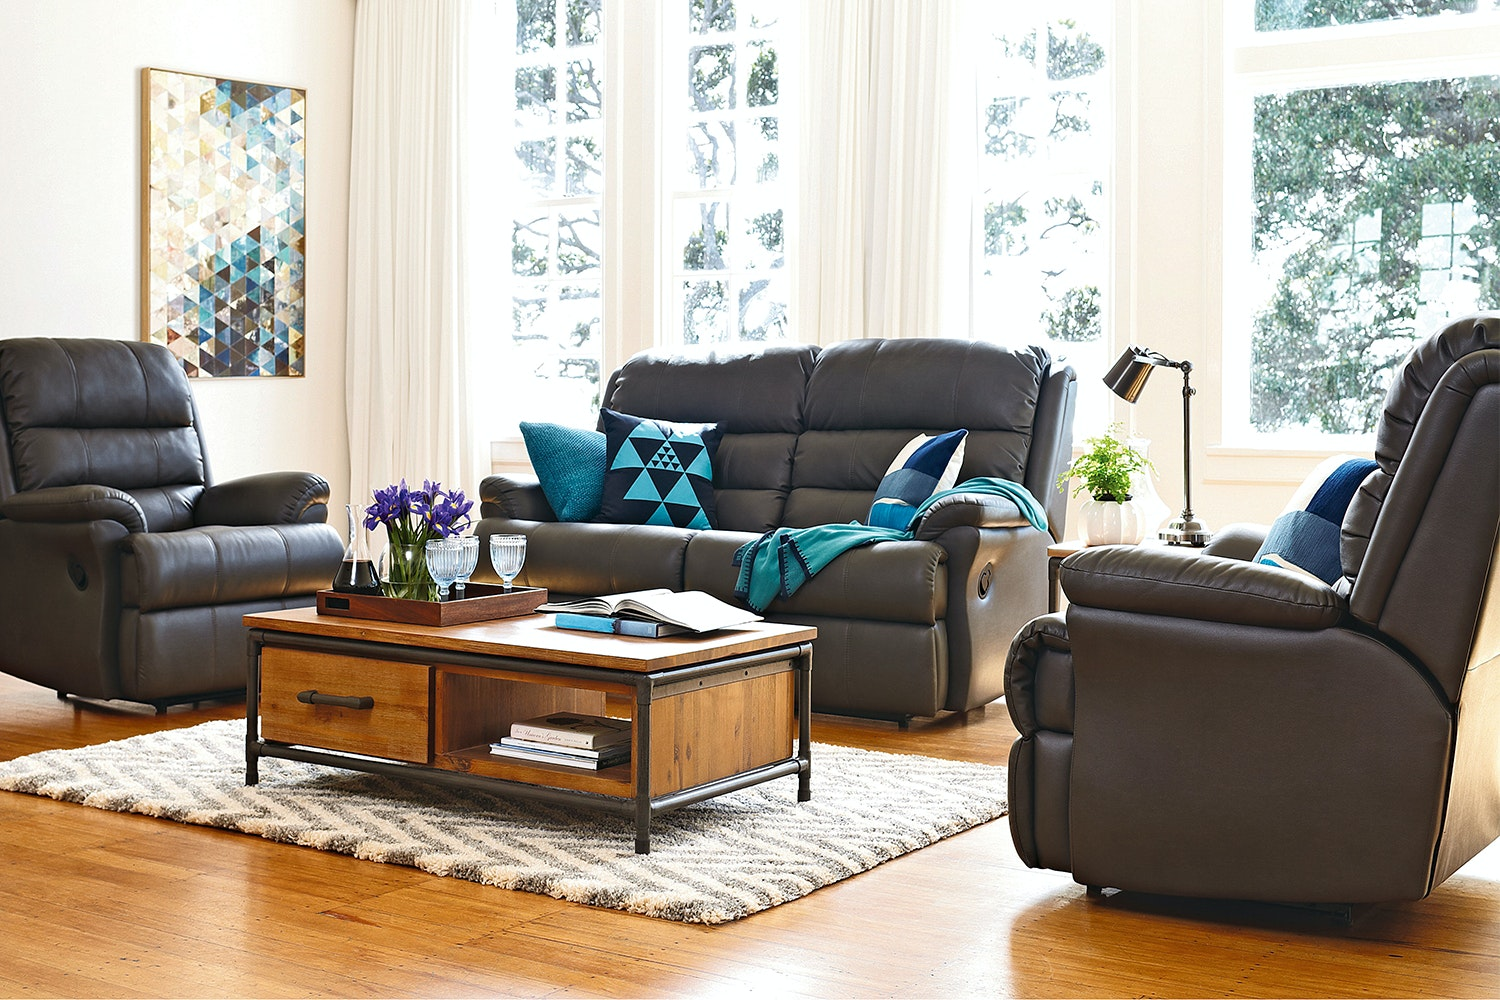 St Clair 3 Piece Fabric Recliner Lounge Suite by Synargy